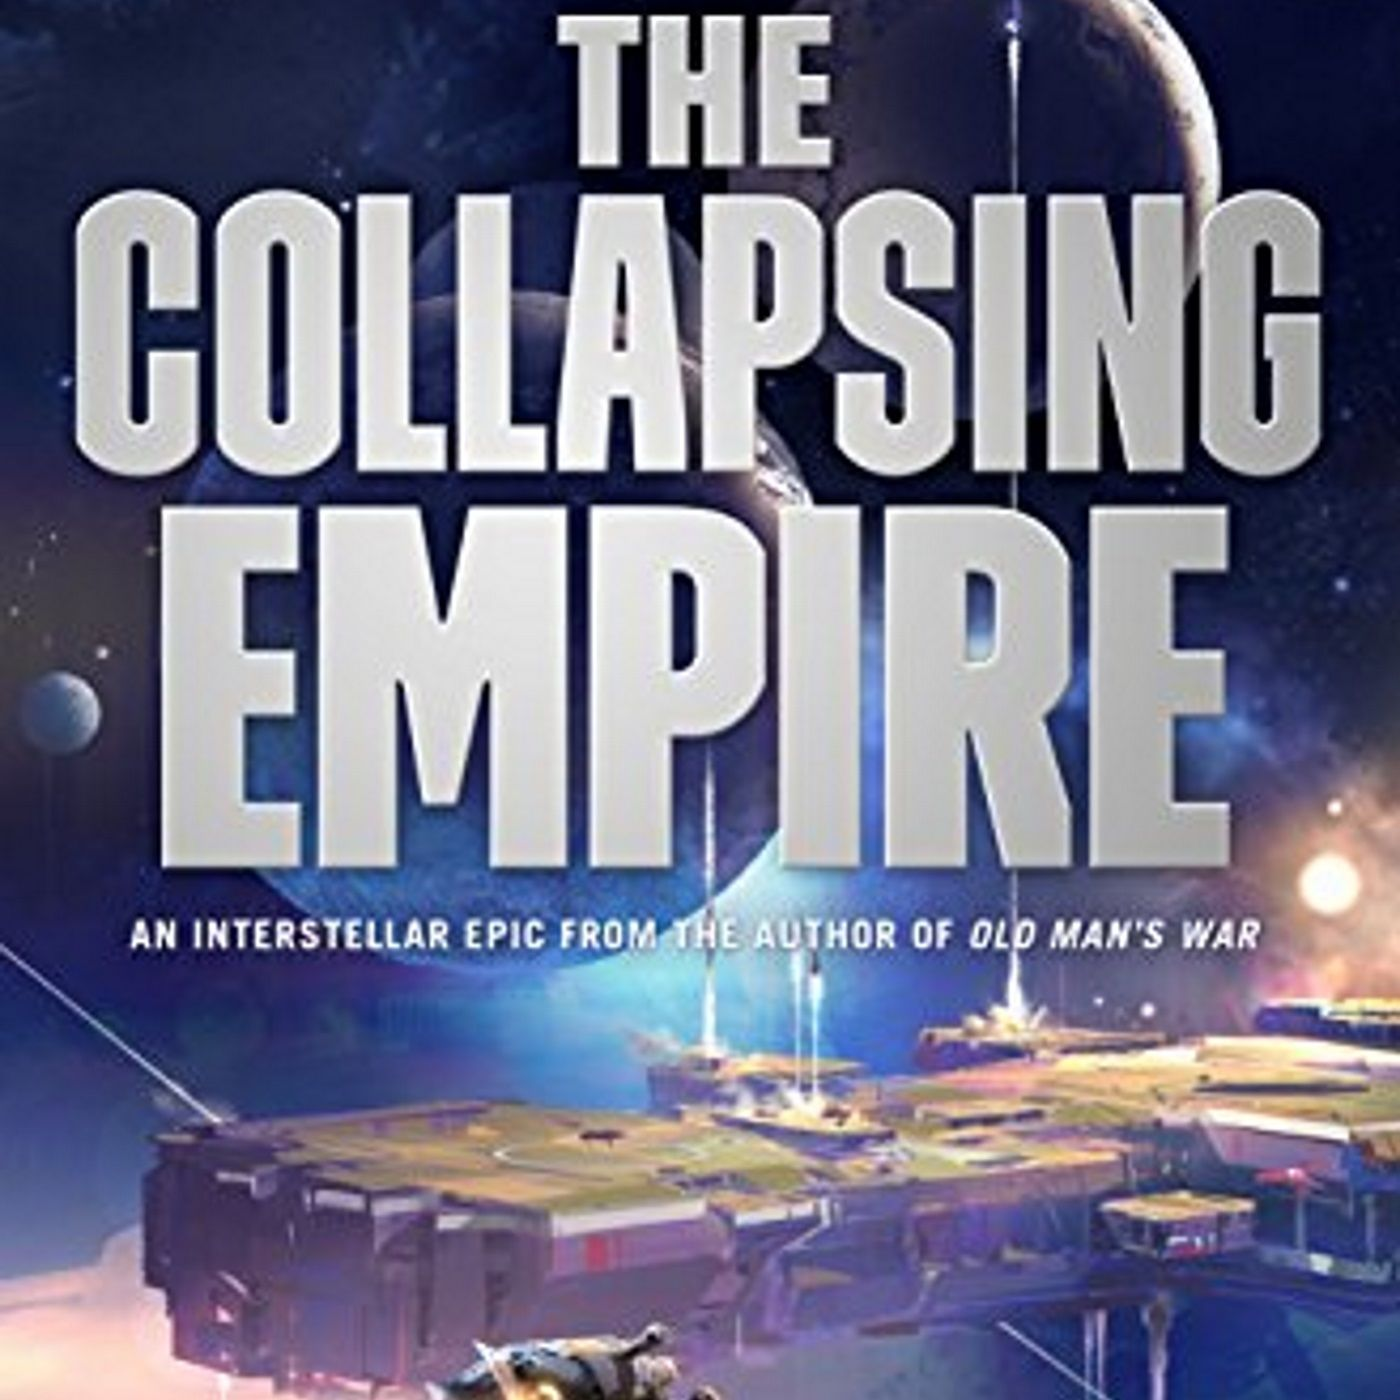 Book-Space! #10. The Collapsing Empire by John Scalzi